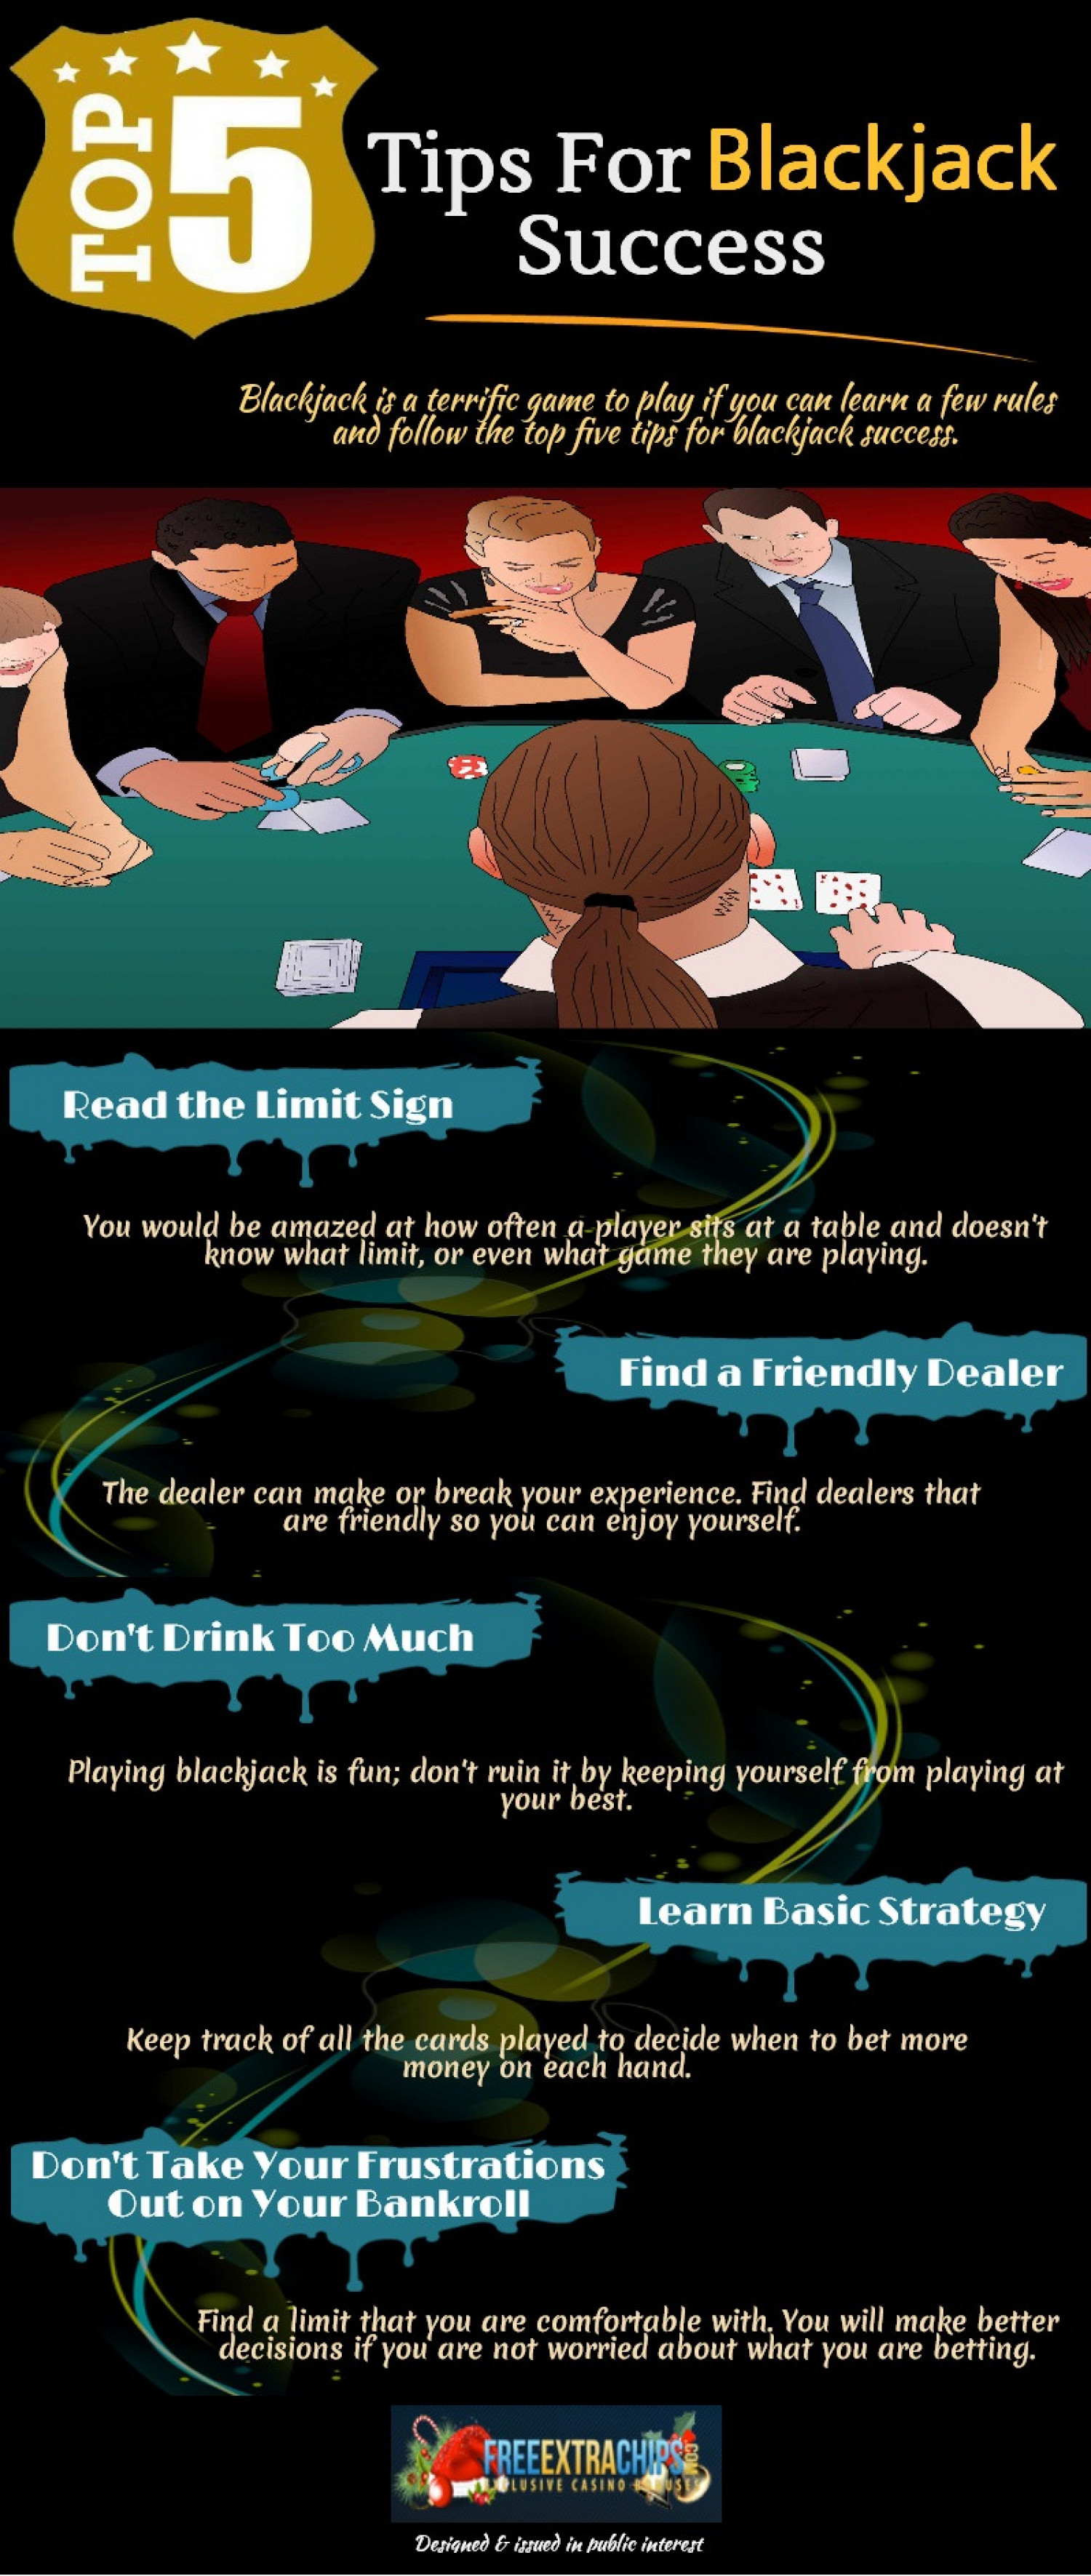 Top 5 Tips for Blackjack Success Infographic